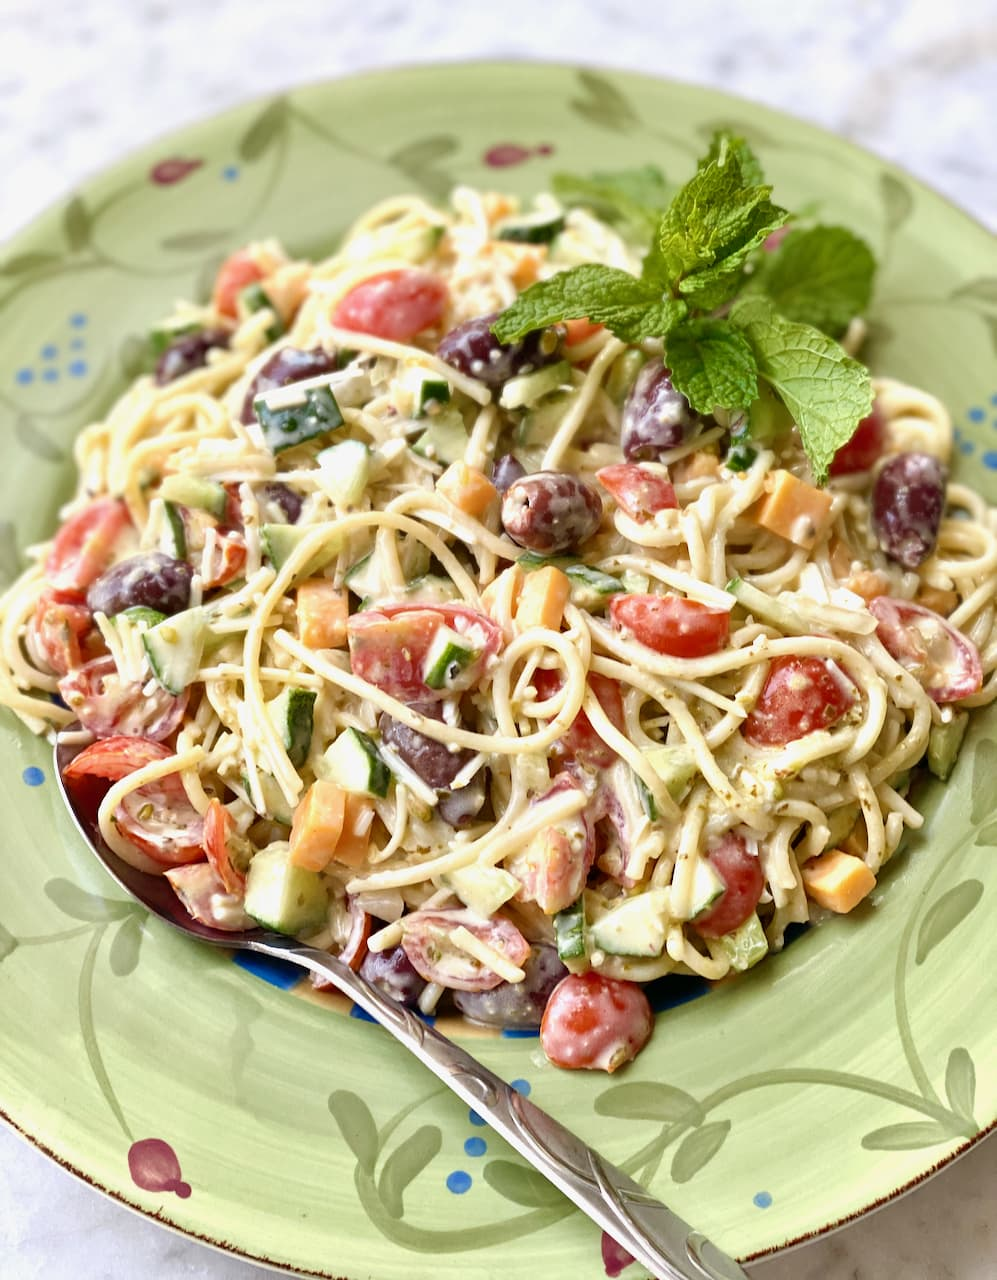 cold spaghetti salad with a variety of vegetables in a green bowl with a mint garnish